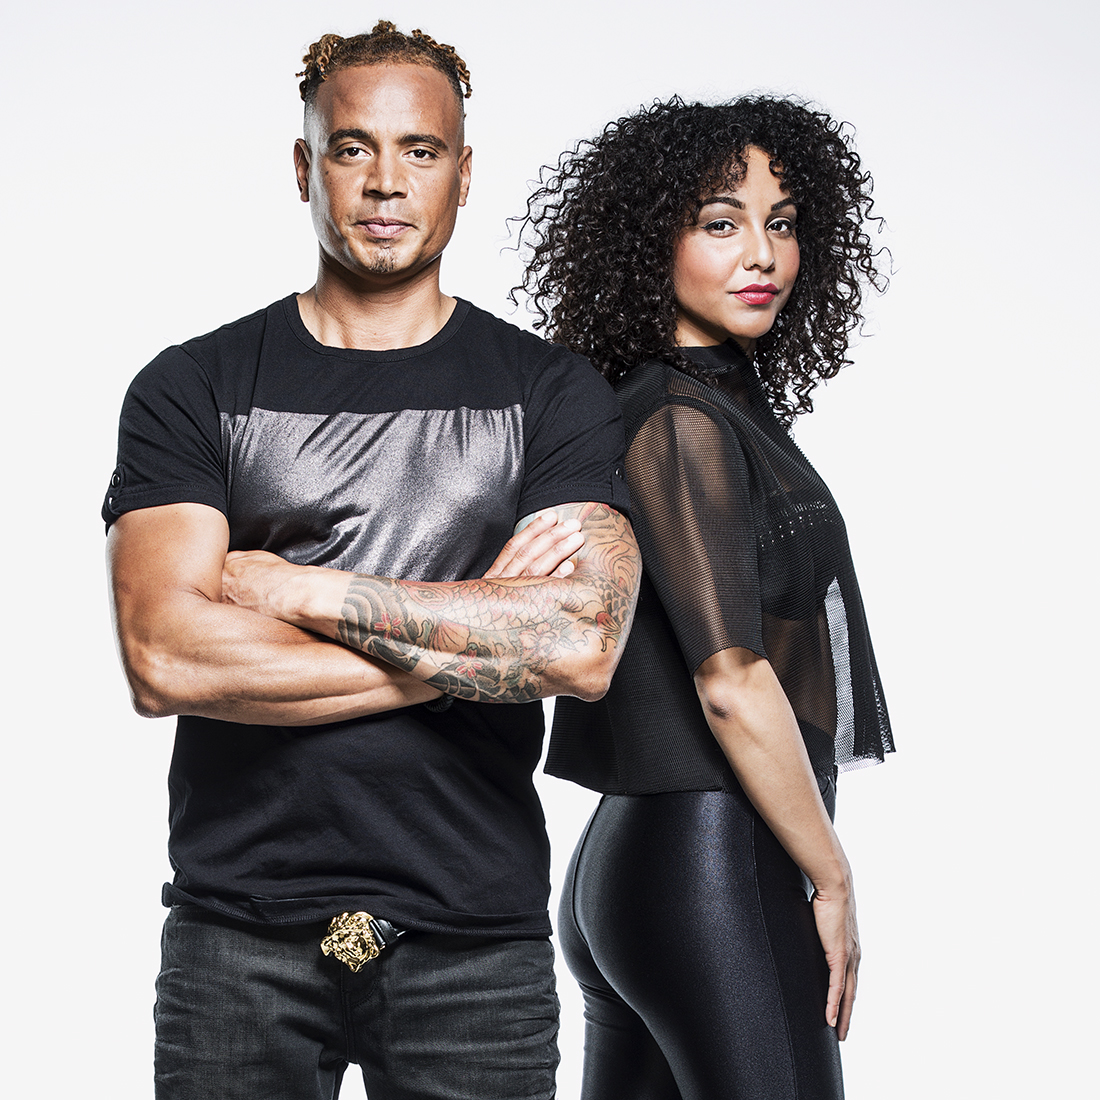 2 UNLIMITED Releases Their Biggest 90s World Hit No Limit After The Get Ready Steve Aoki Remix Of Has Put Icons